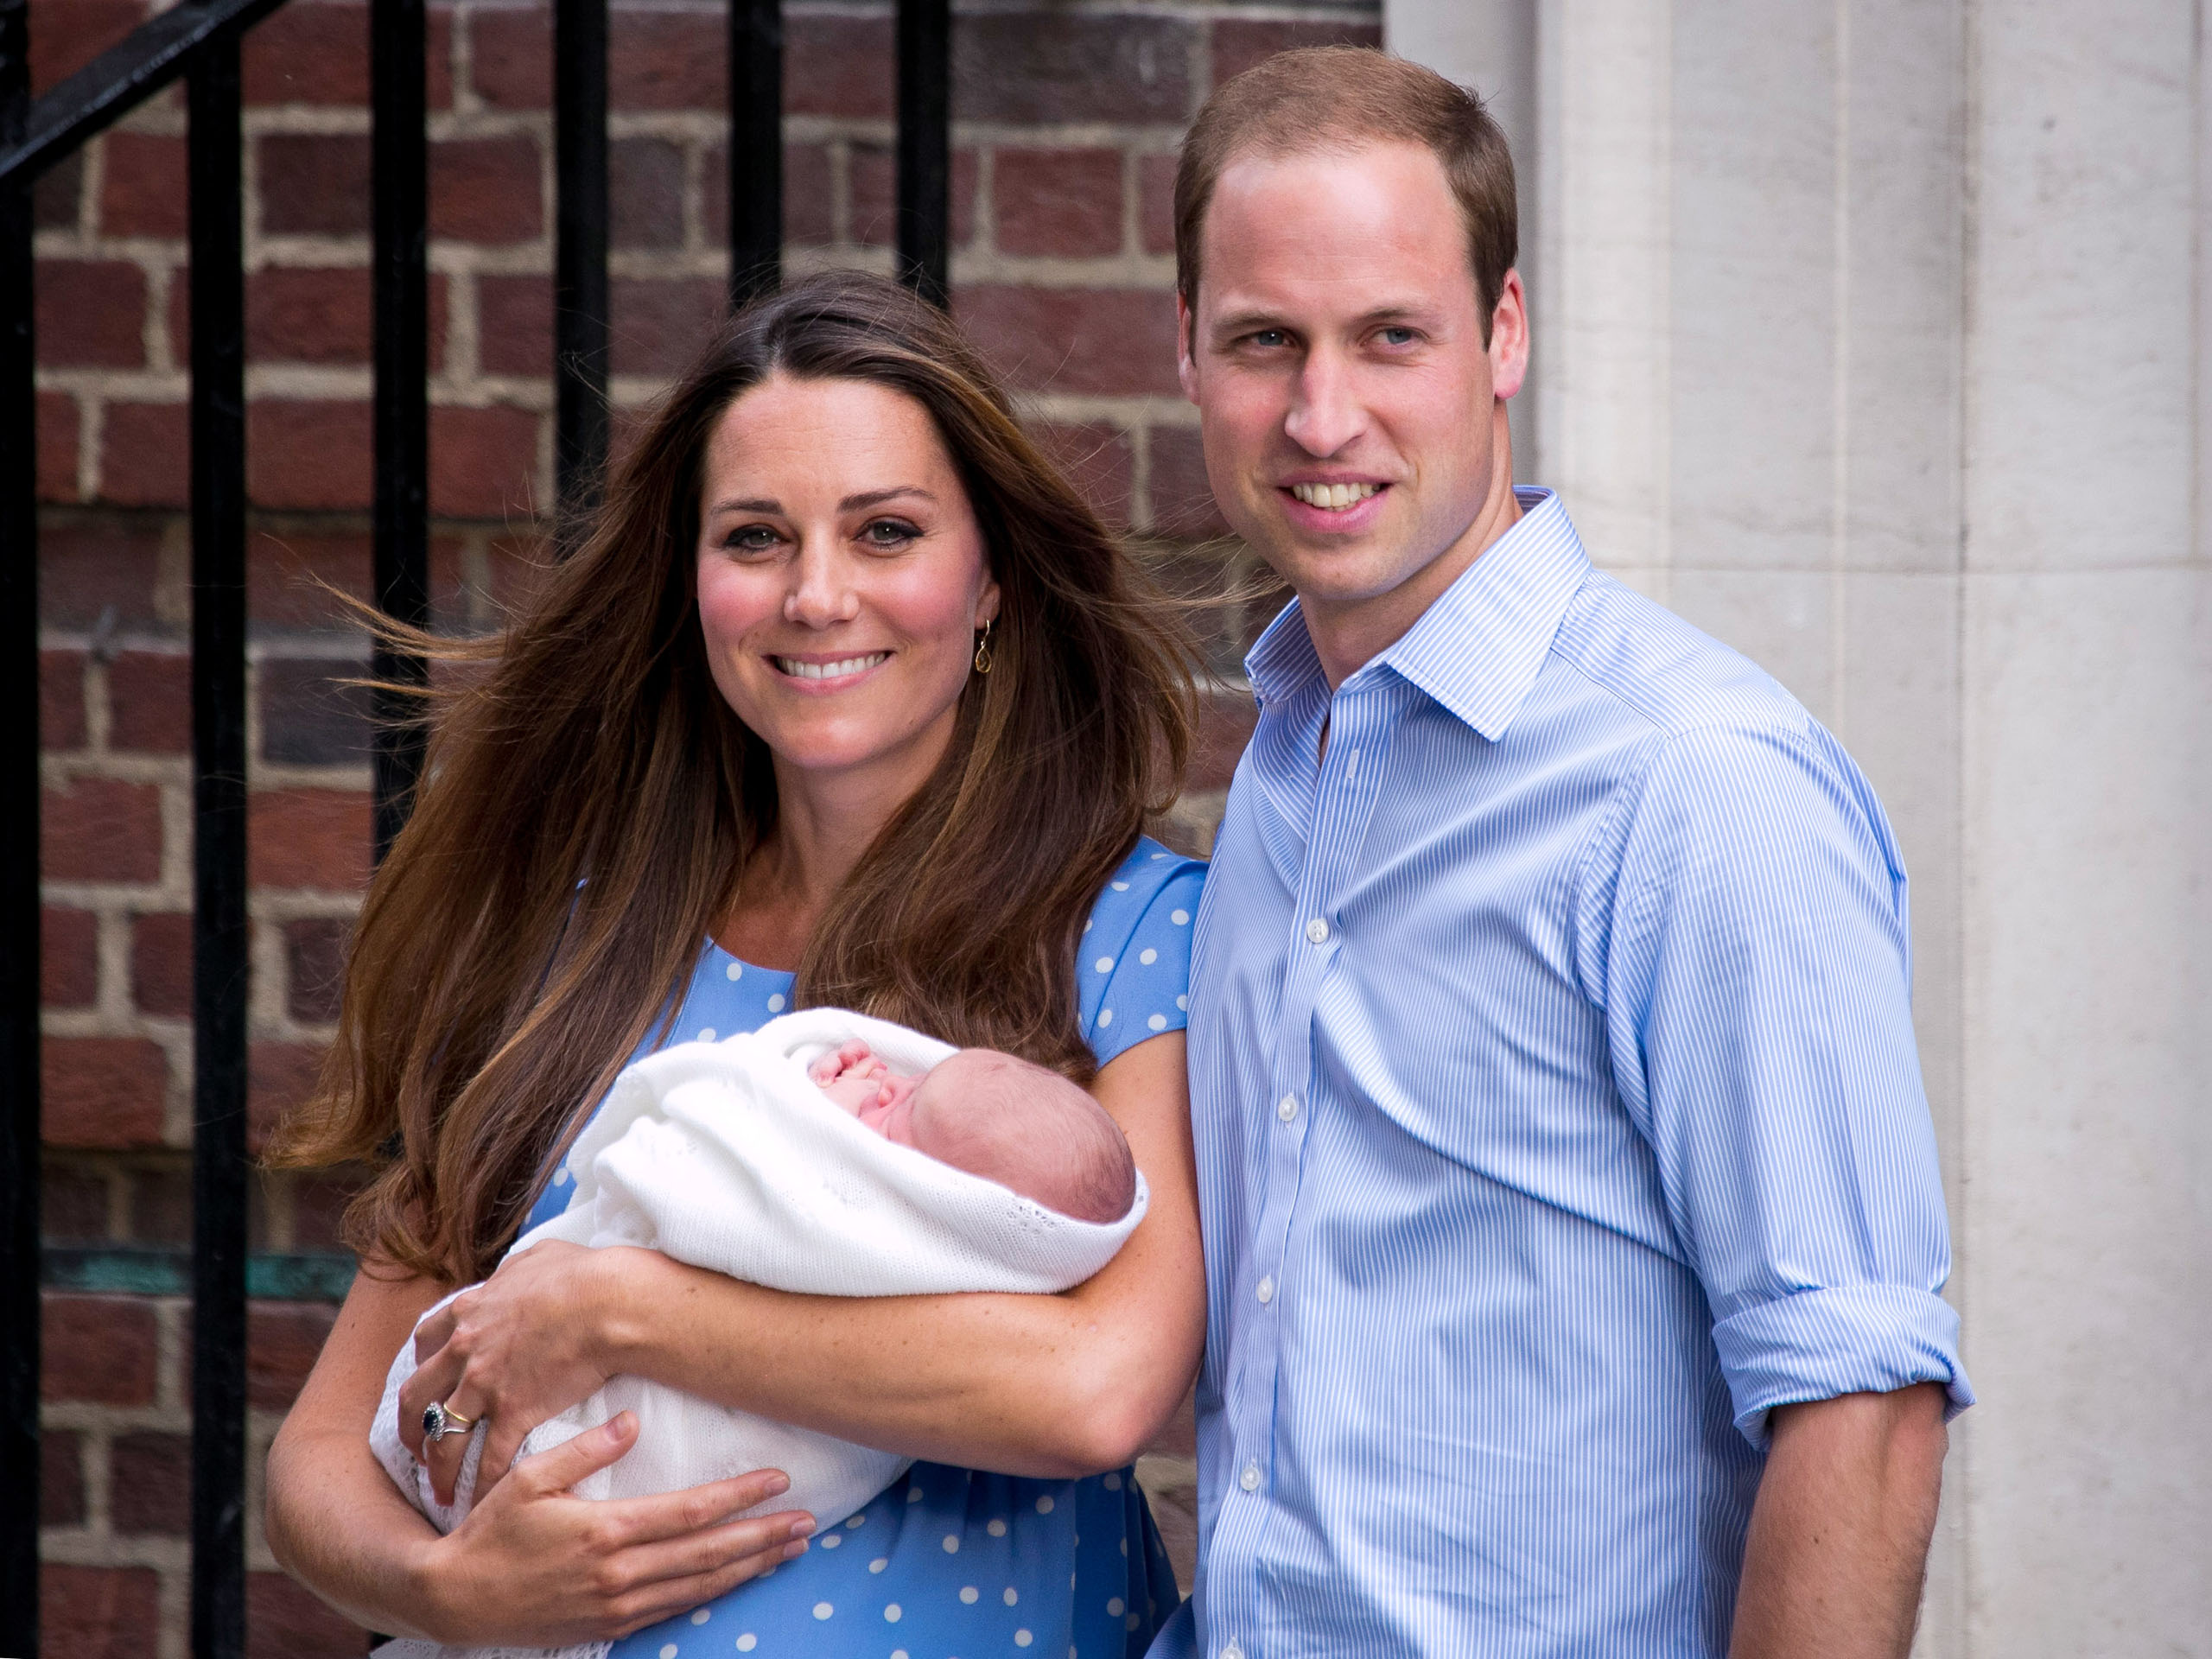 Prince William and Catherine with their newborn son, Prince George, depart the Lindo Wing of St Mary's Hospital in London on July 23, 2013.